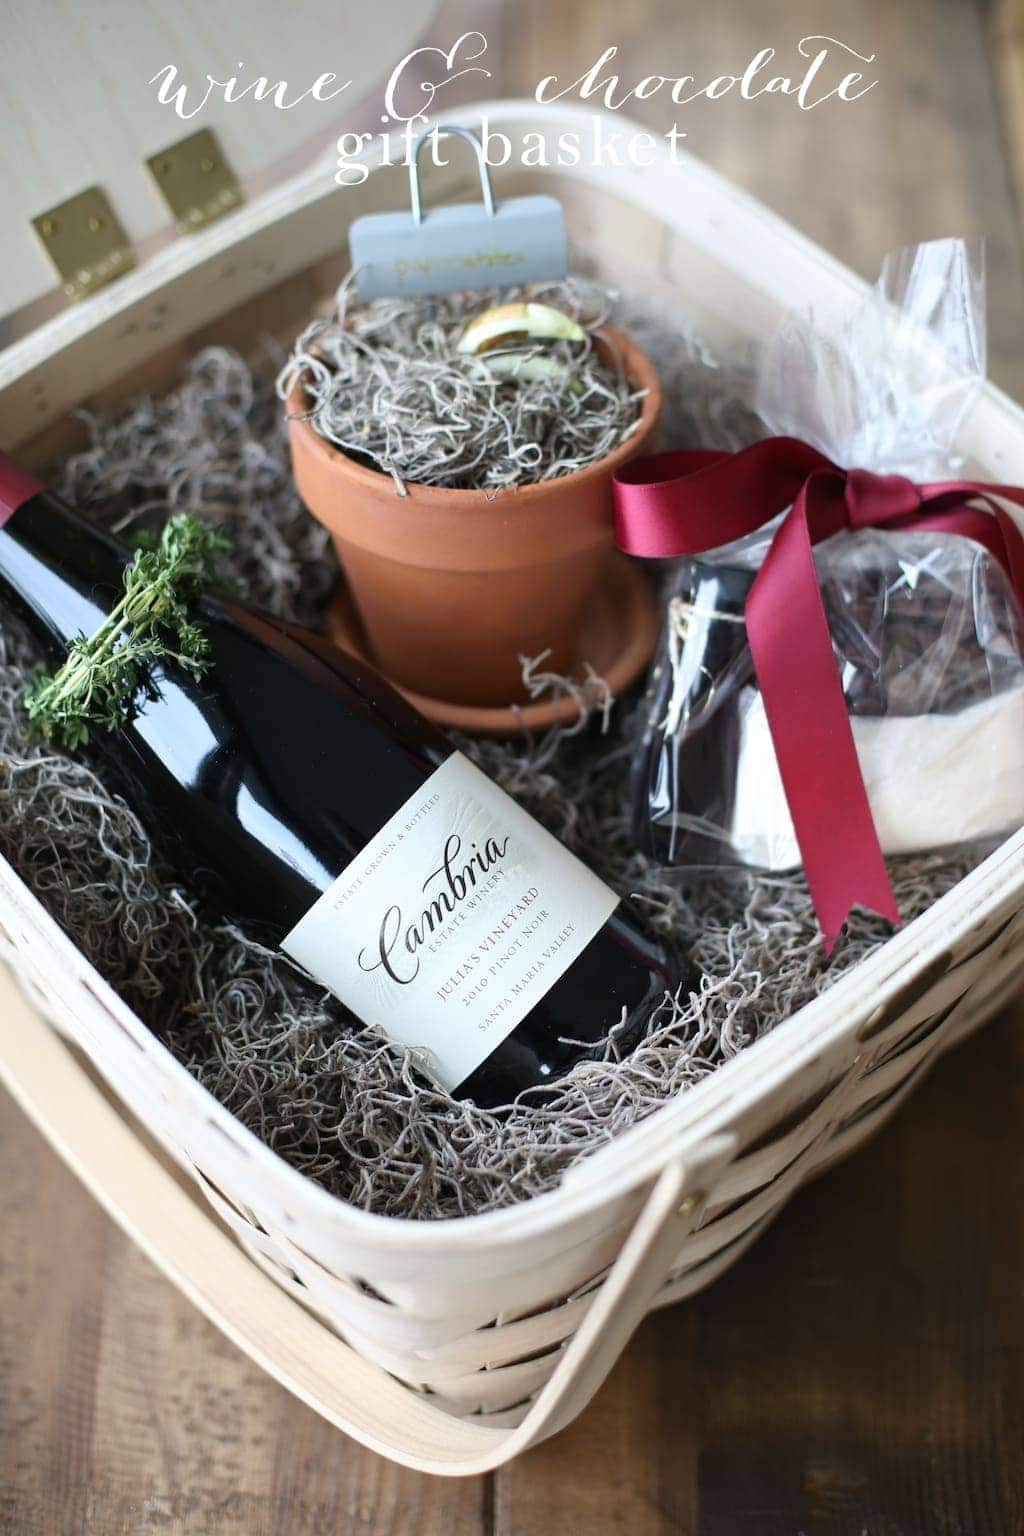 Wine & Chocolate Gift basket with a molten lava cake kit & recipe!